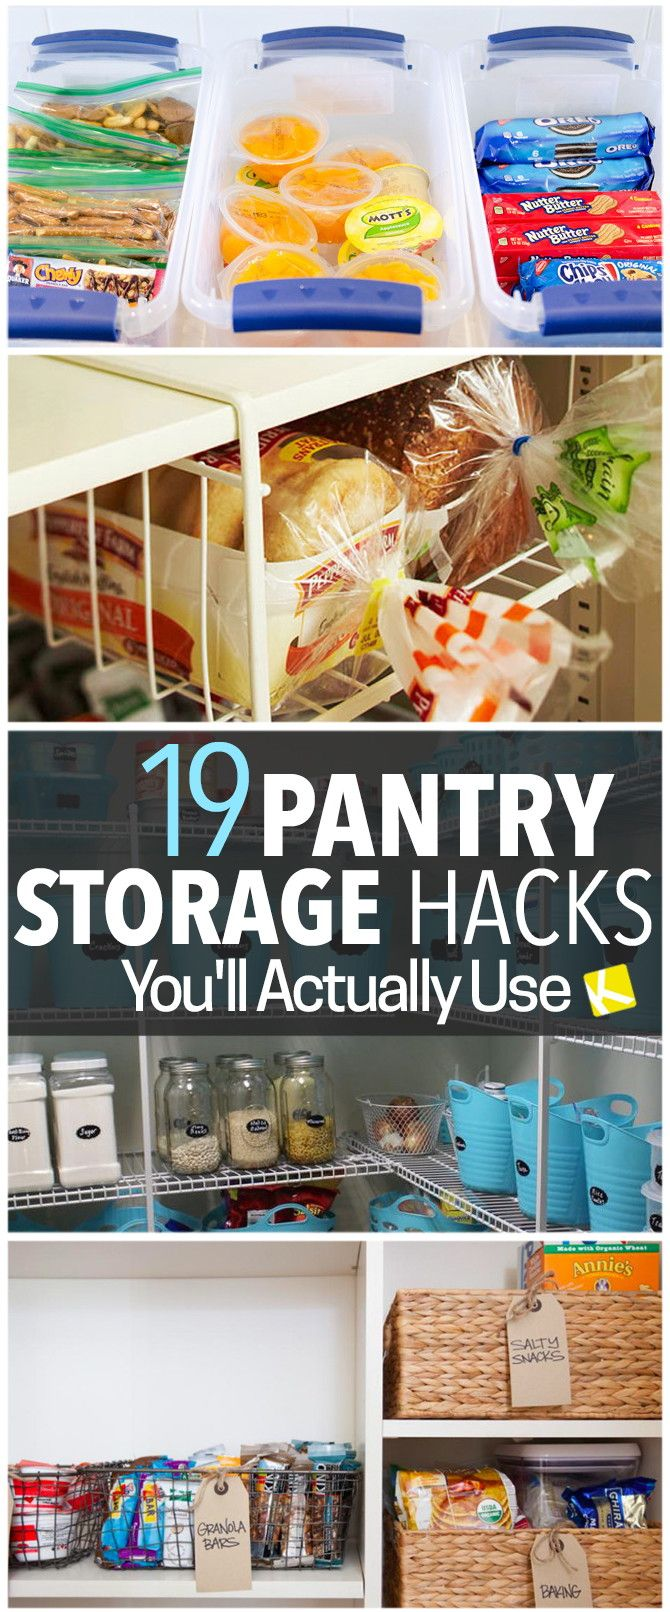 19 pantry organization hacks that will change your life pantry 19 pantry organization hacks that will change your life solutioingenieria Images